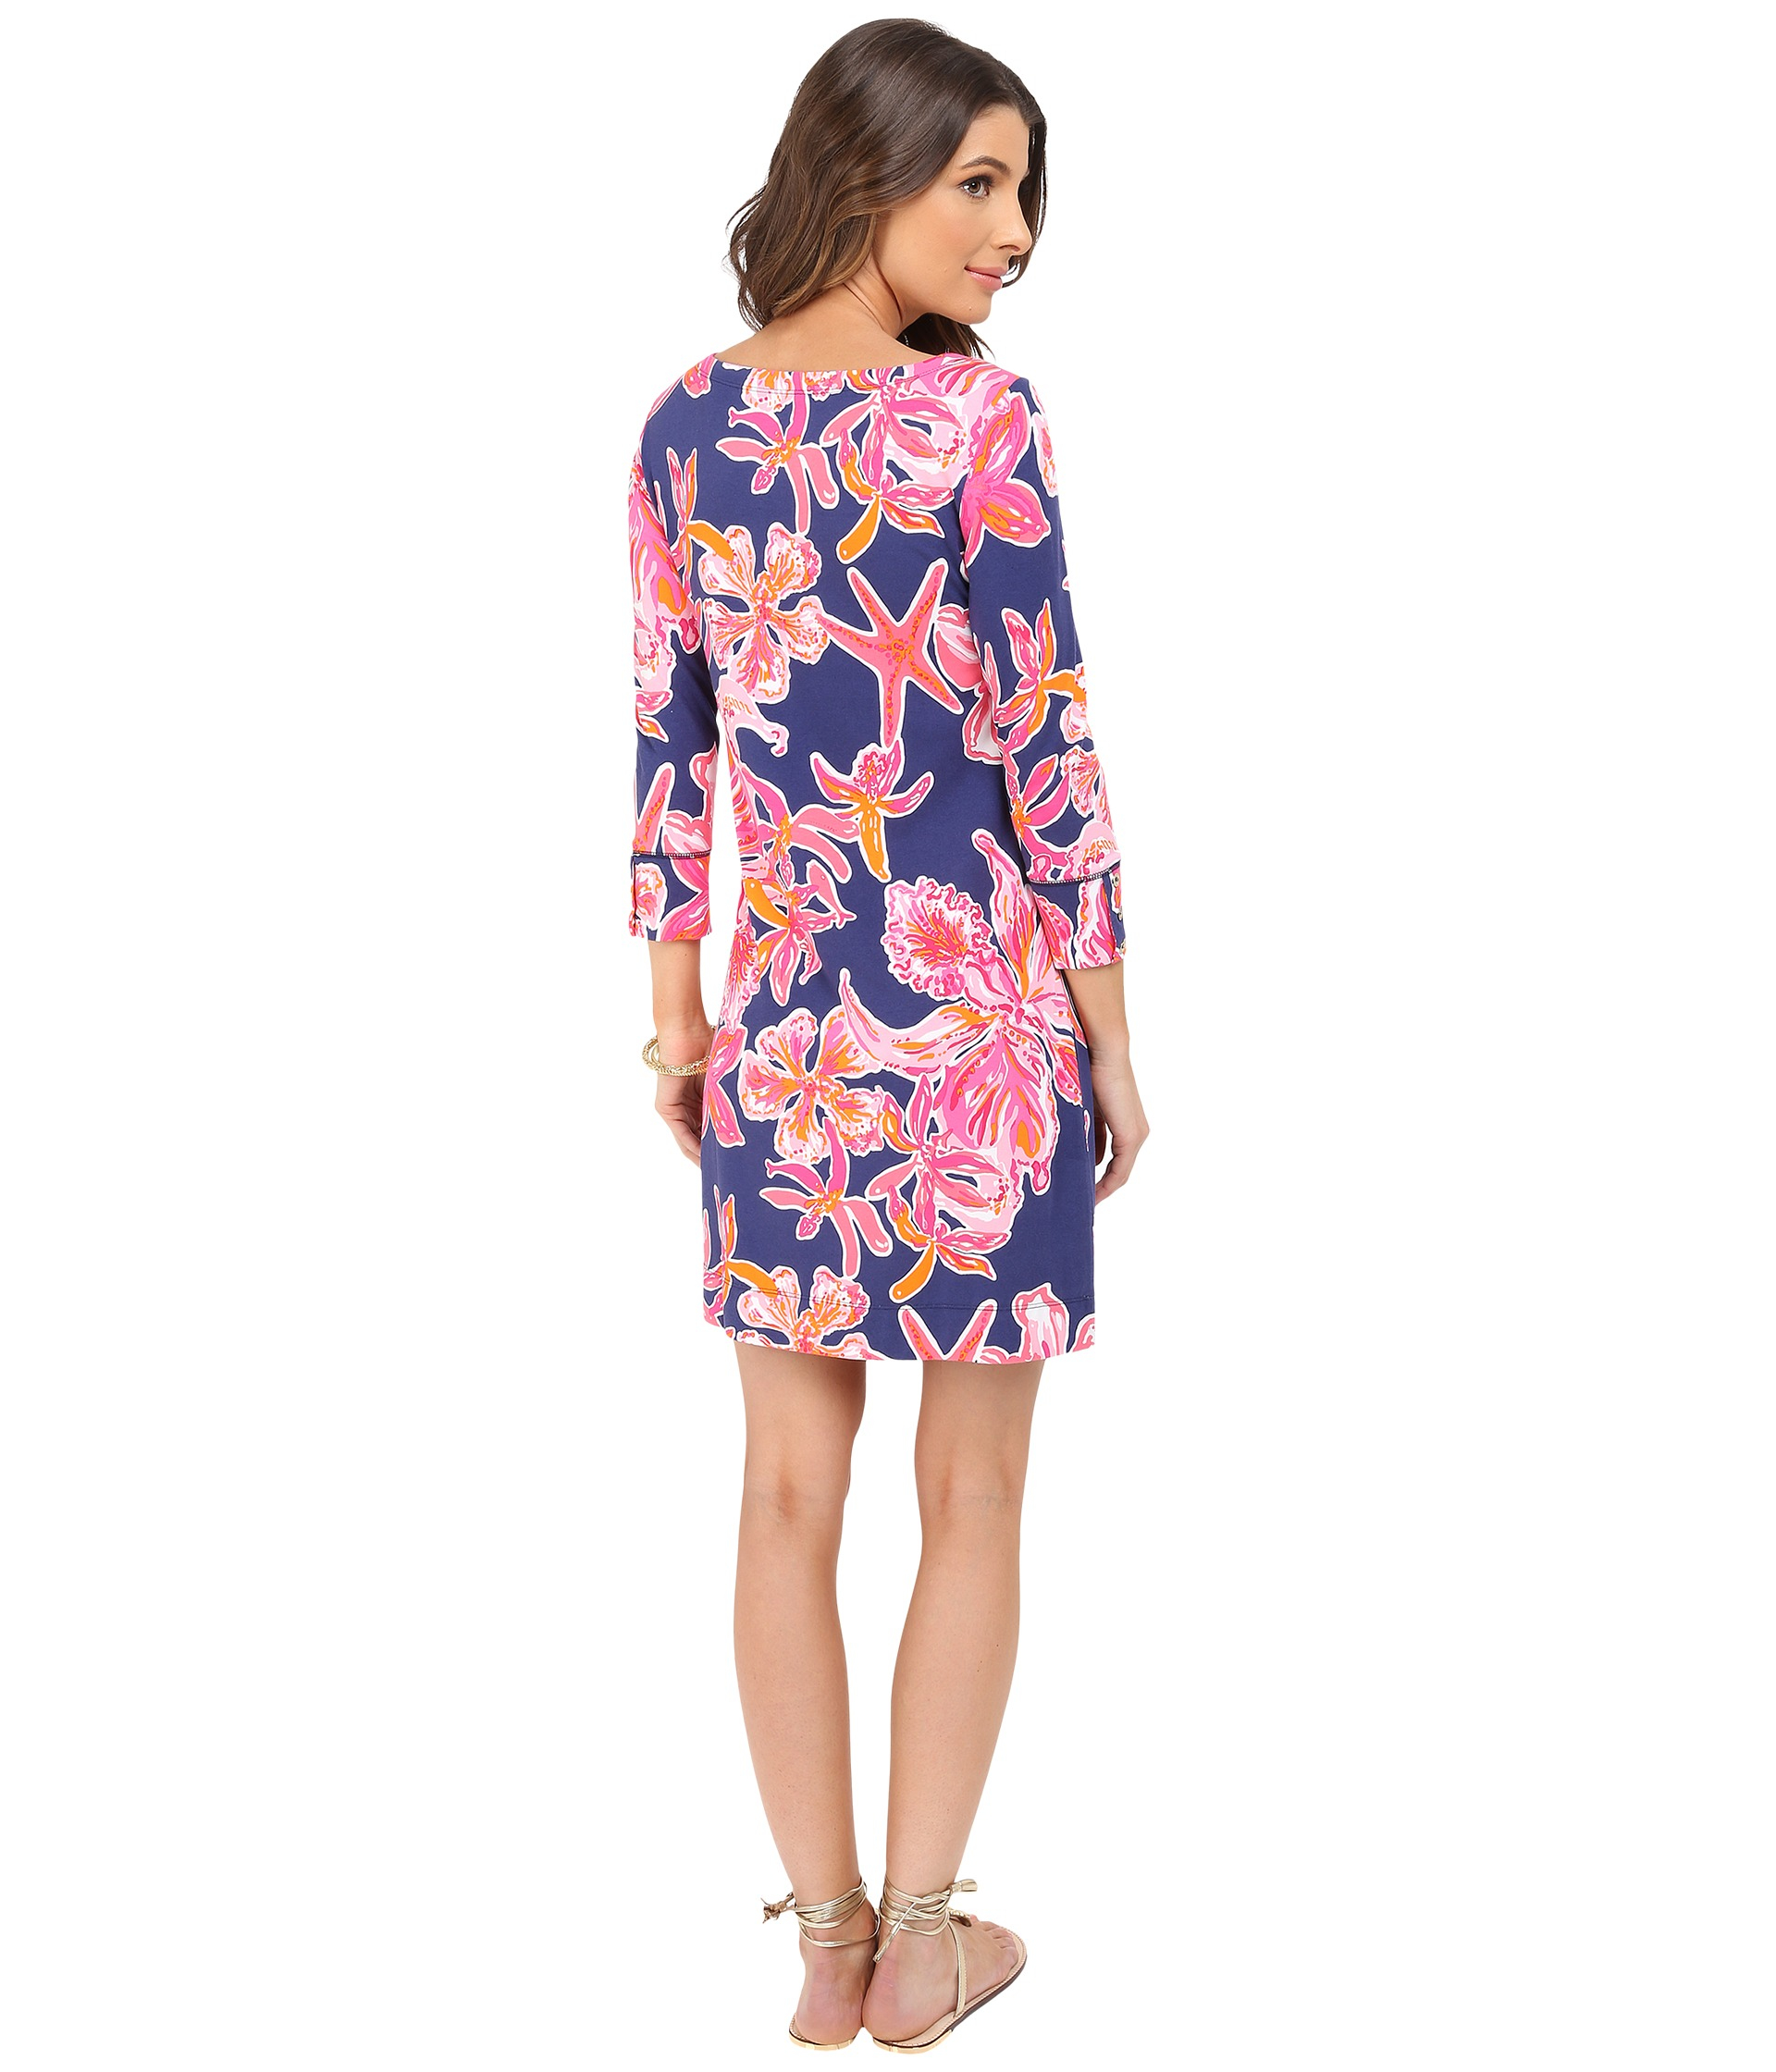 2337526d2513fb Lilly Pulitzer Upf 50+ Sophie Dress in Blue - Lyst